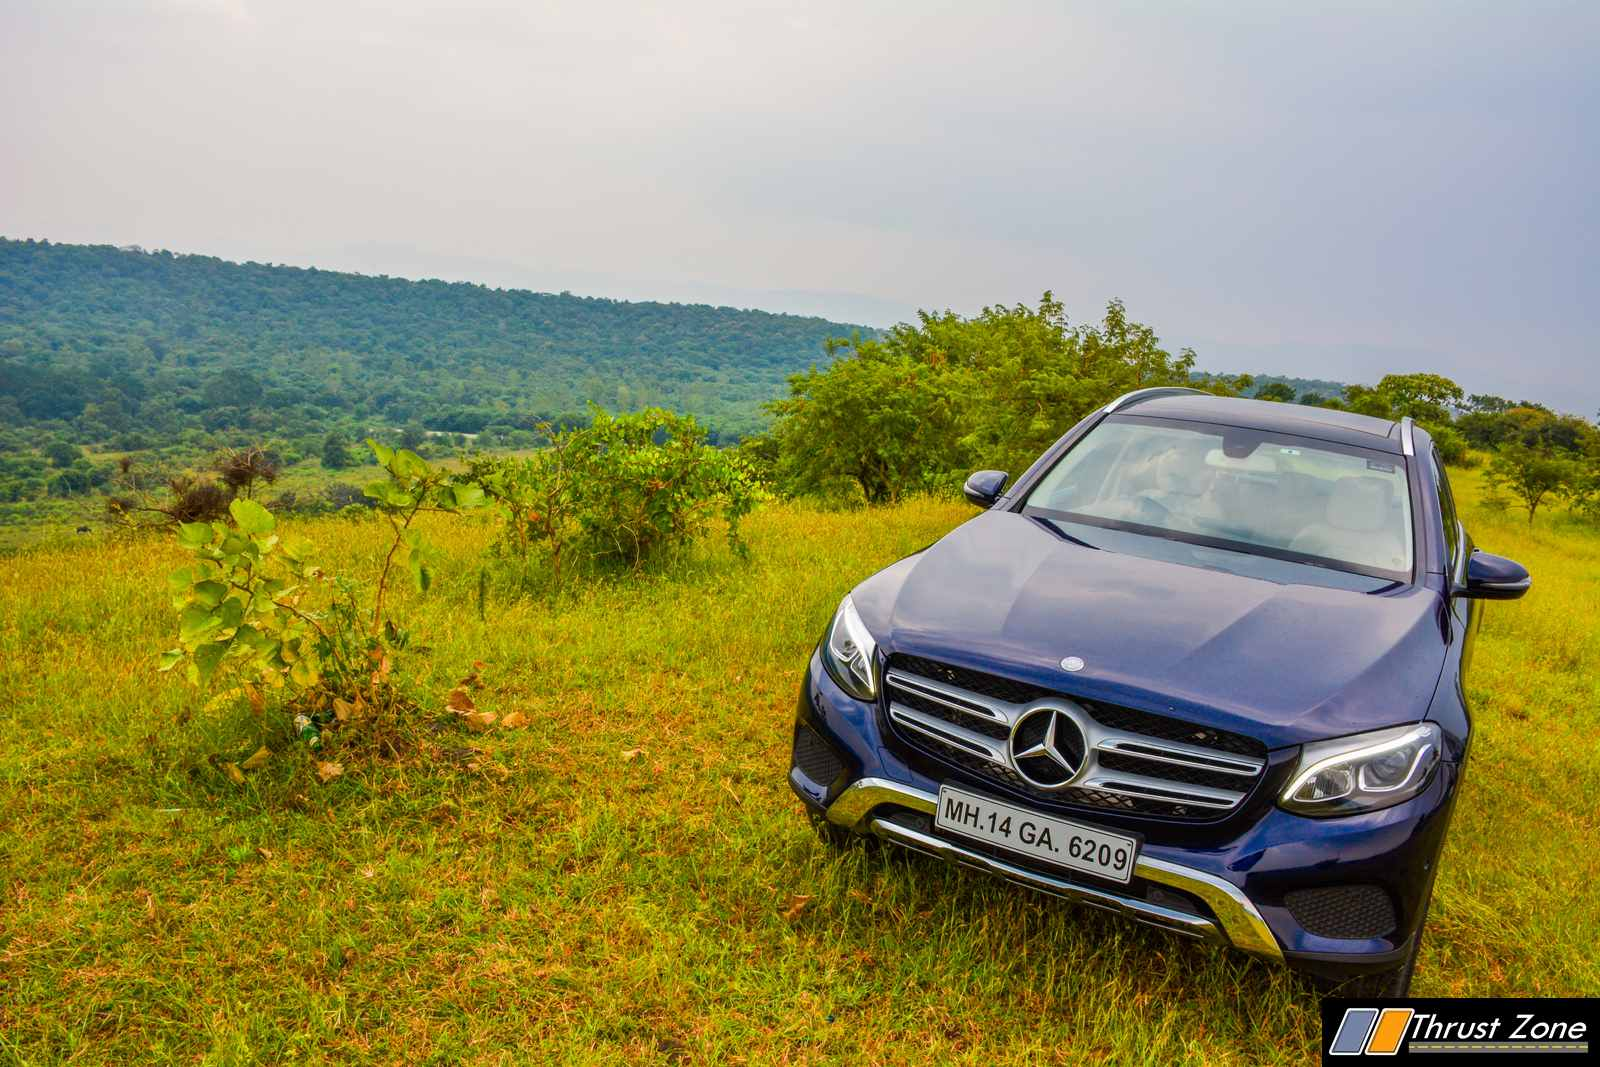 https://www.thrustzone.com/wp-content/uploads/2017/11/Mercedes-GLC-300-SUV-India-Review-17.jpg